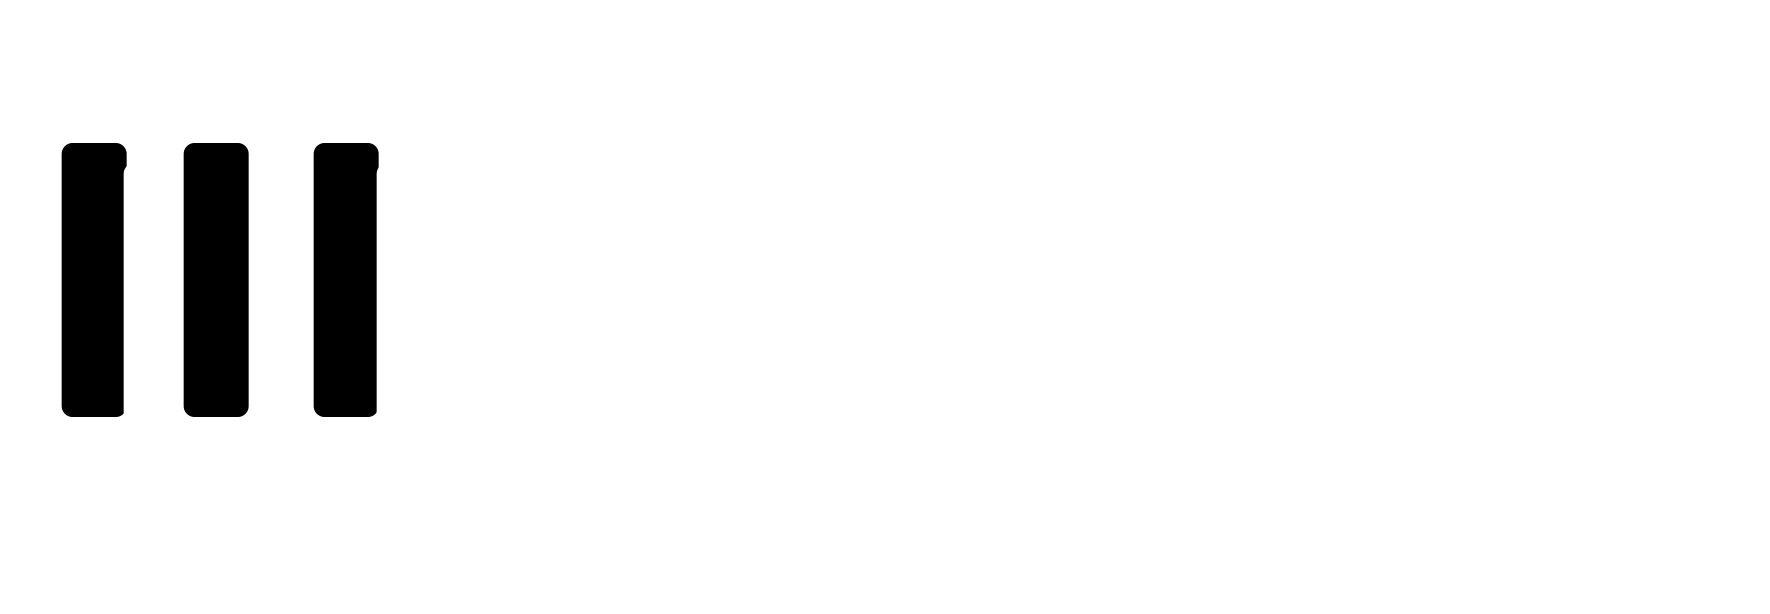 Learn 2 play piano